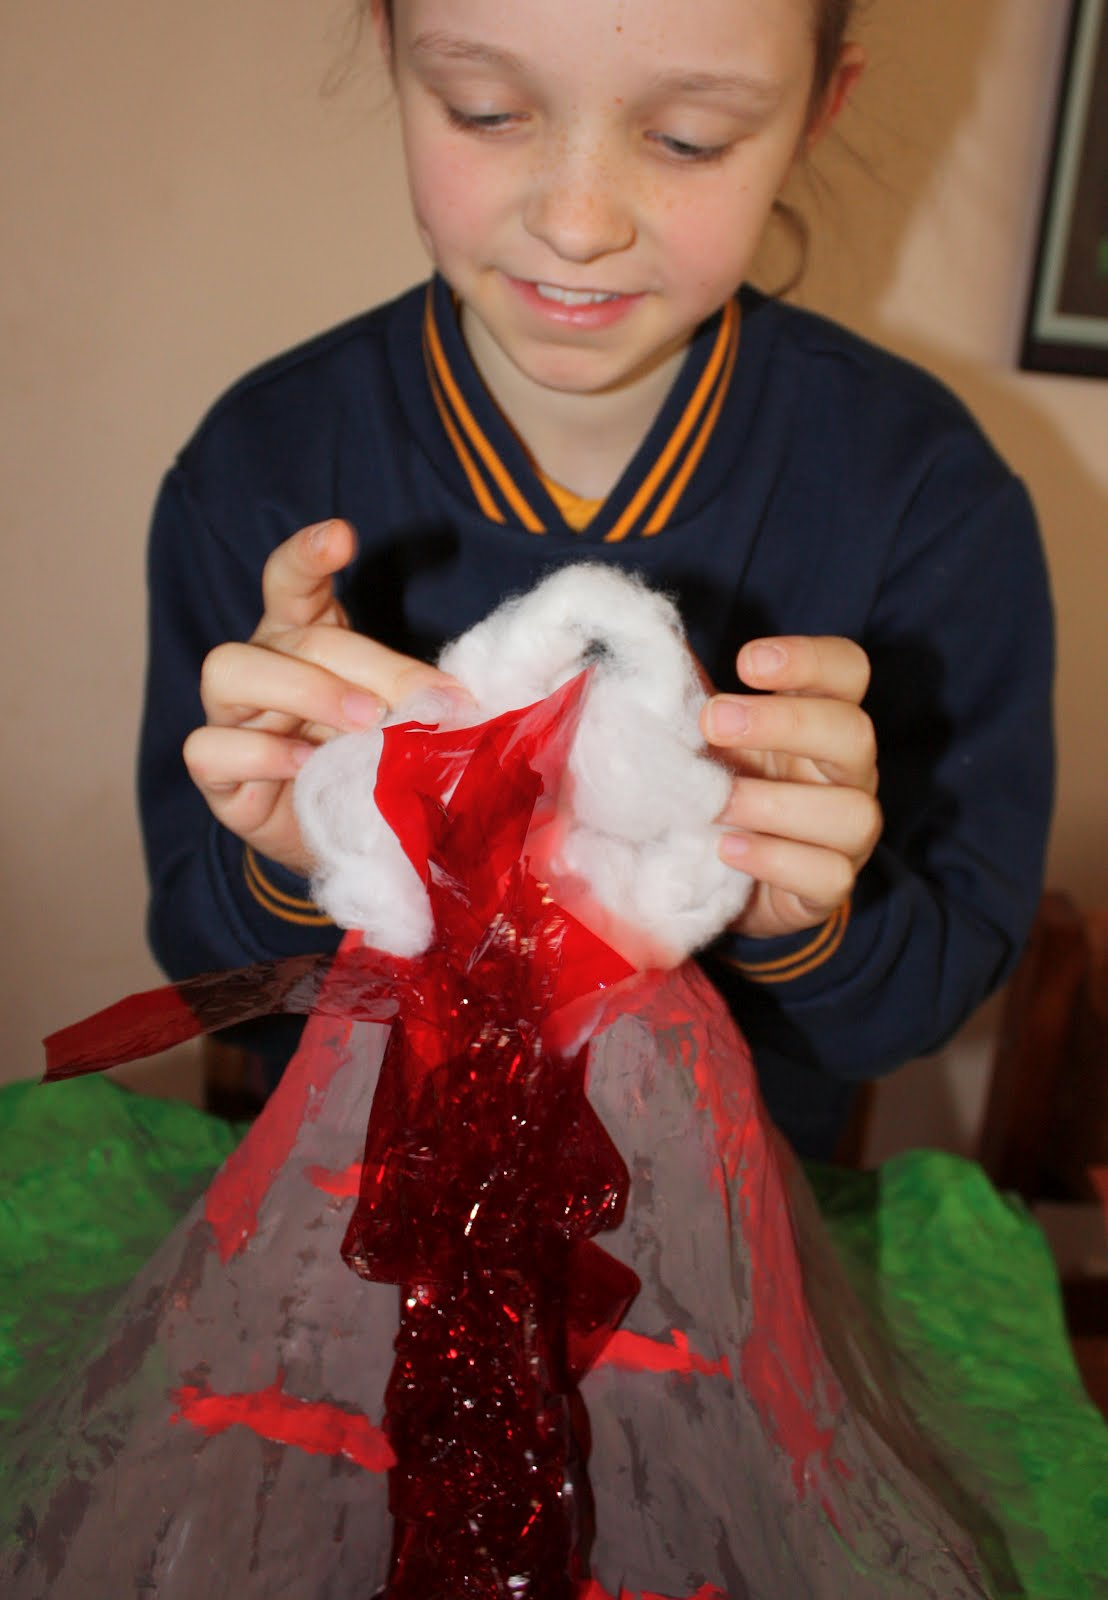 how to make a volcano for a school project